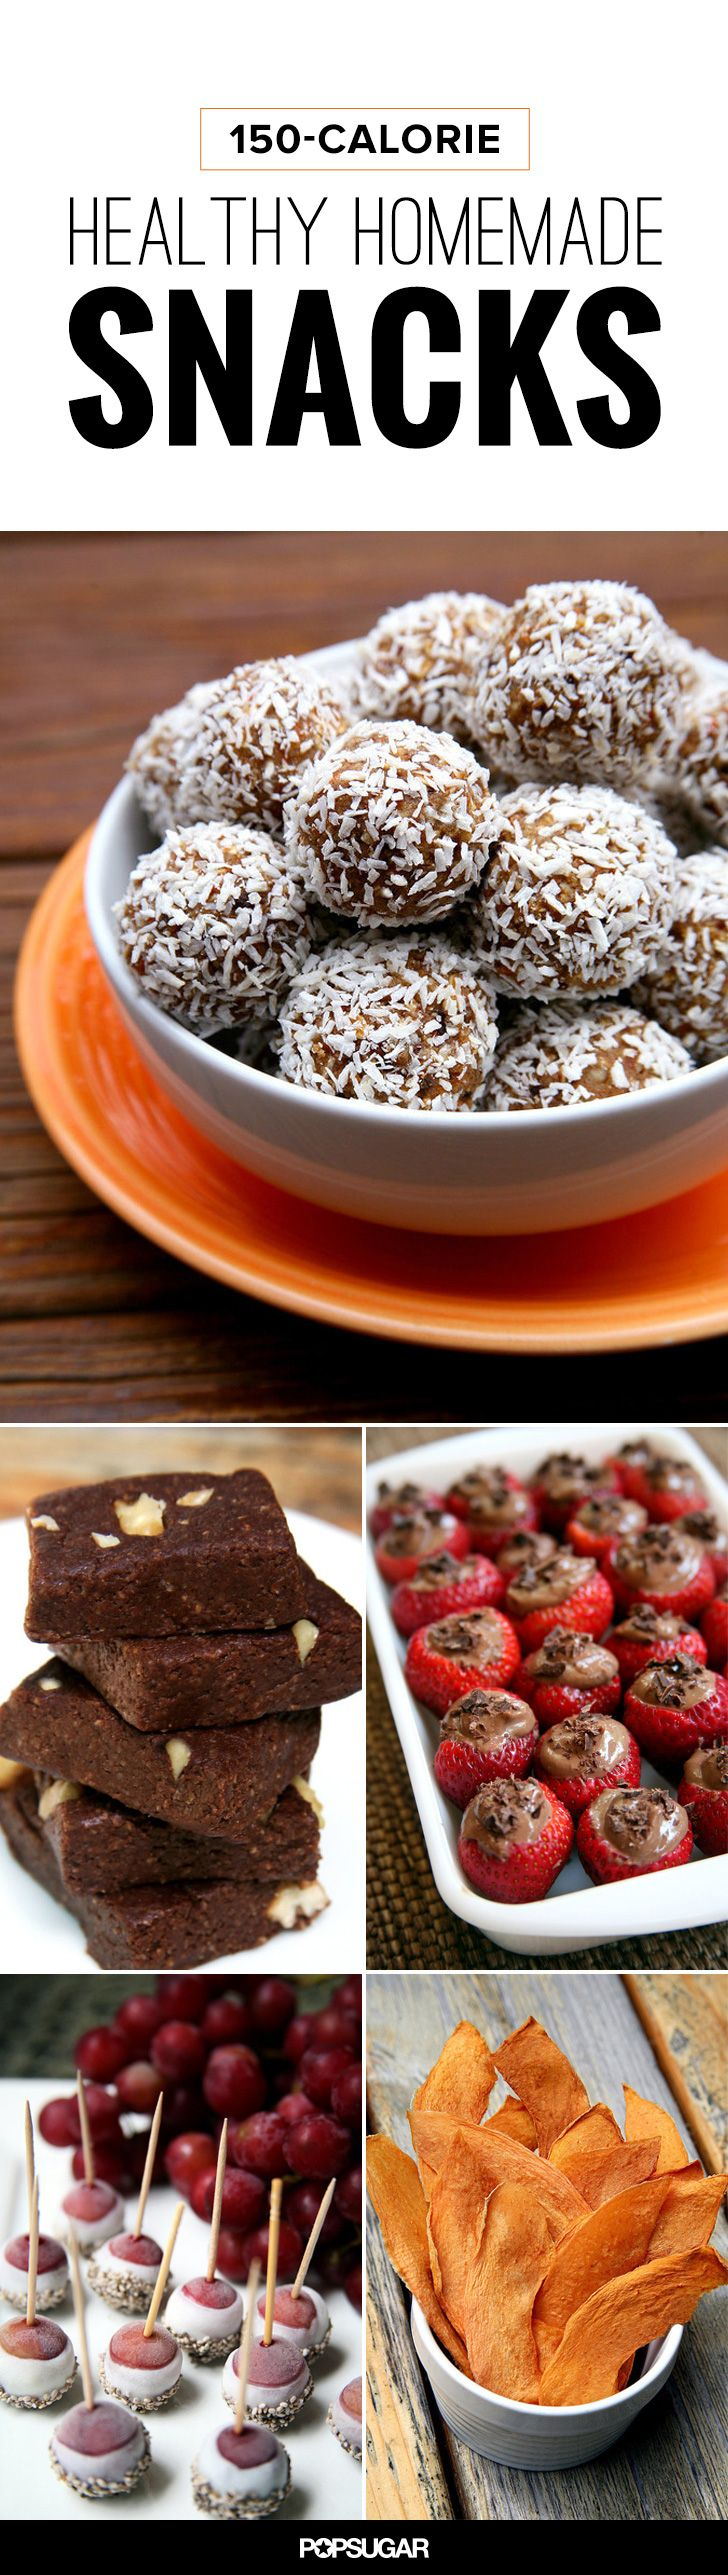 55 Snacks to Satisfy Hunger, All Under 150 Calories